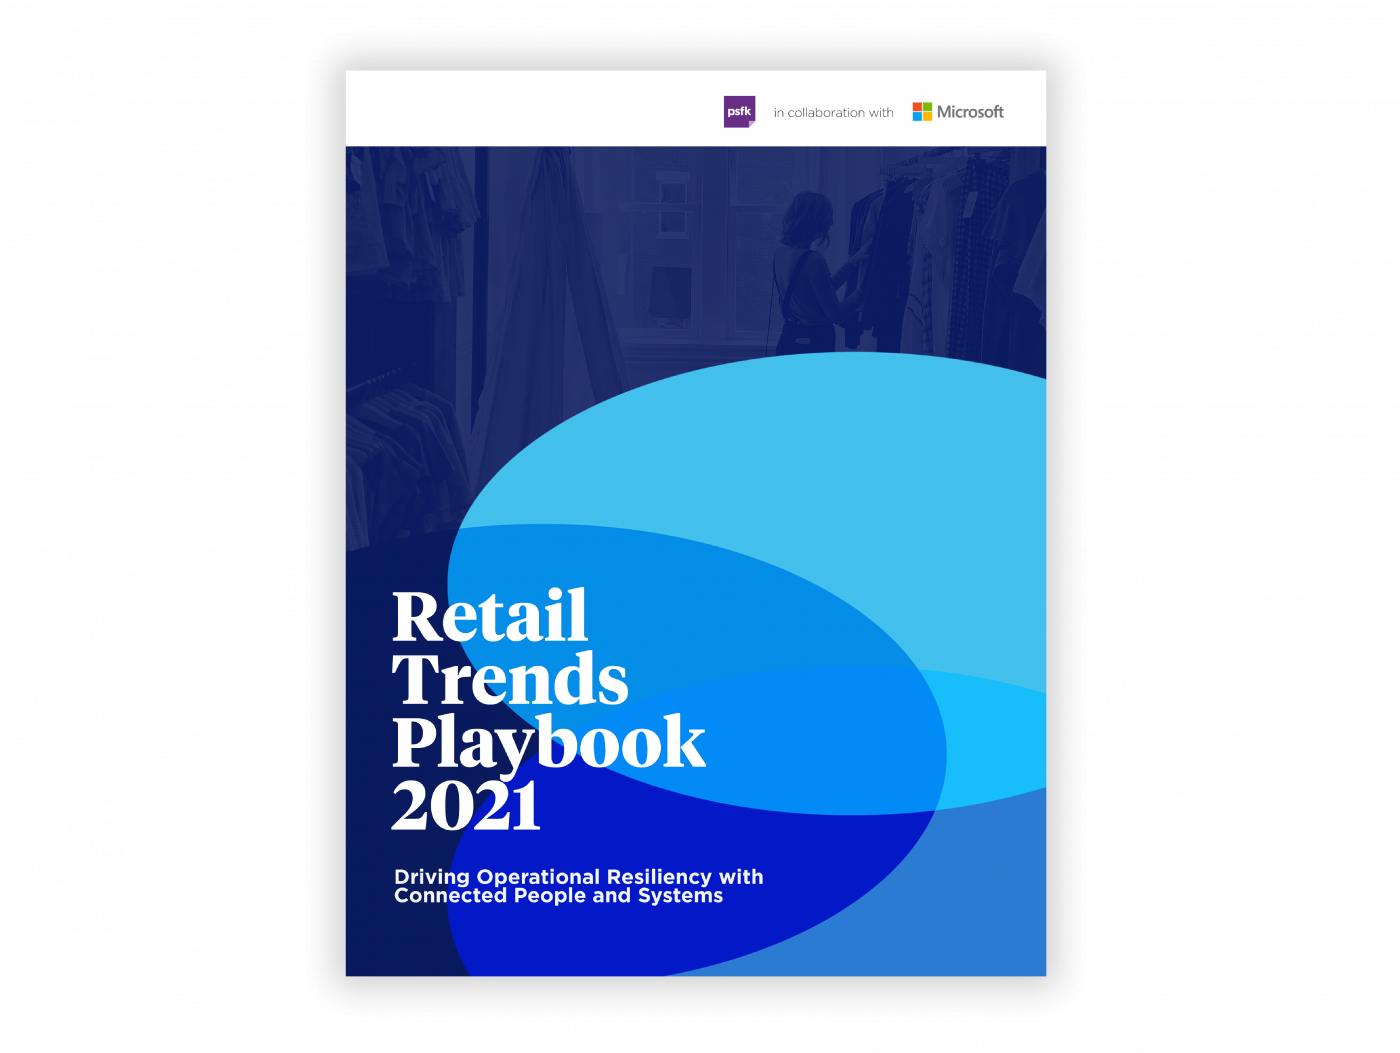 Retail Trends Playbook 2021